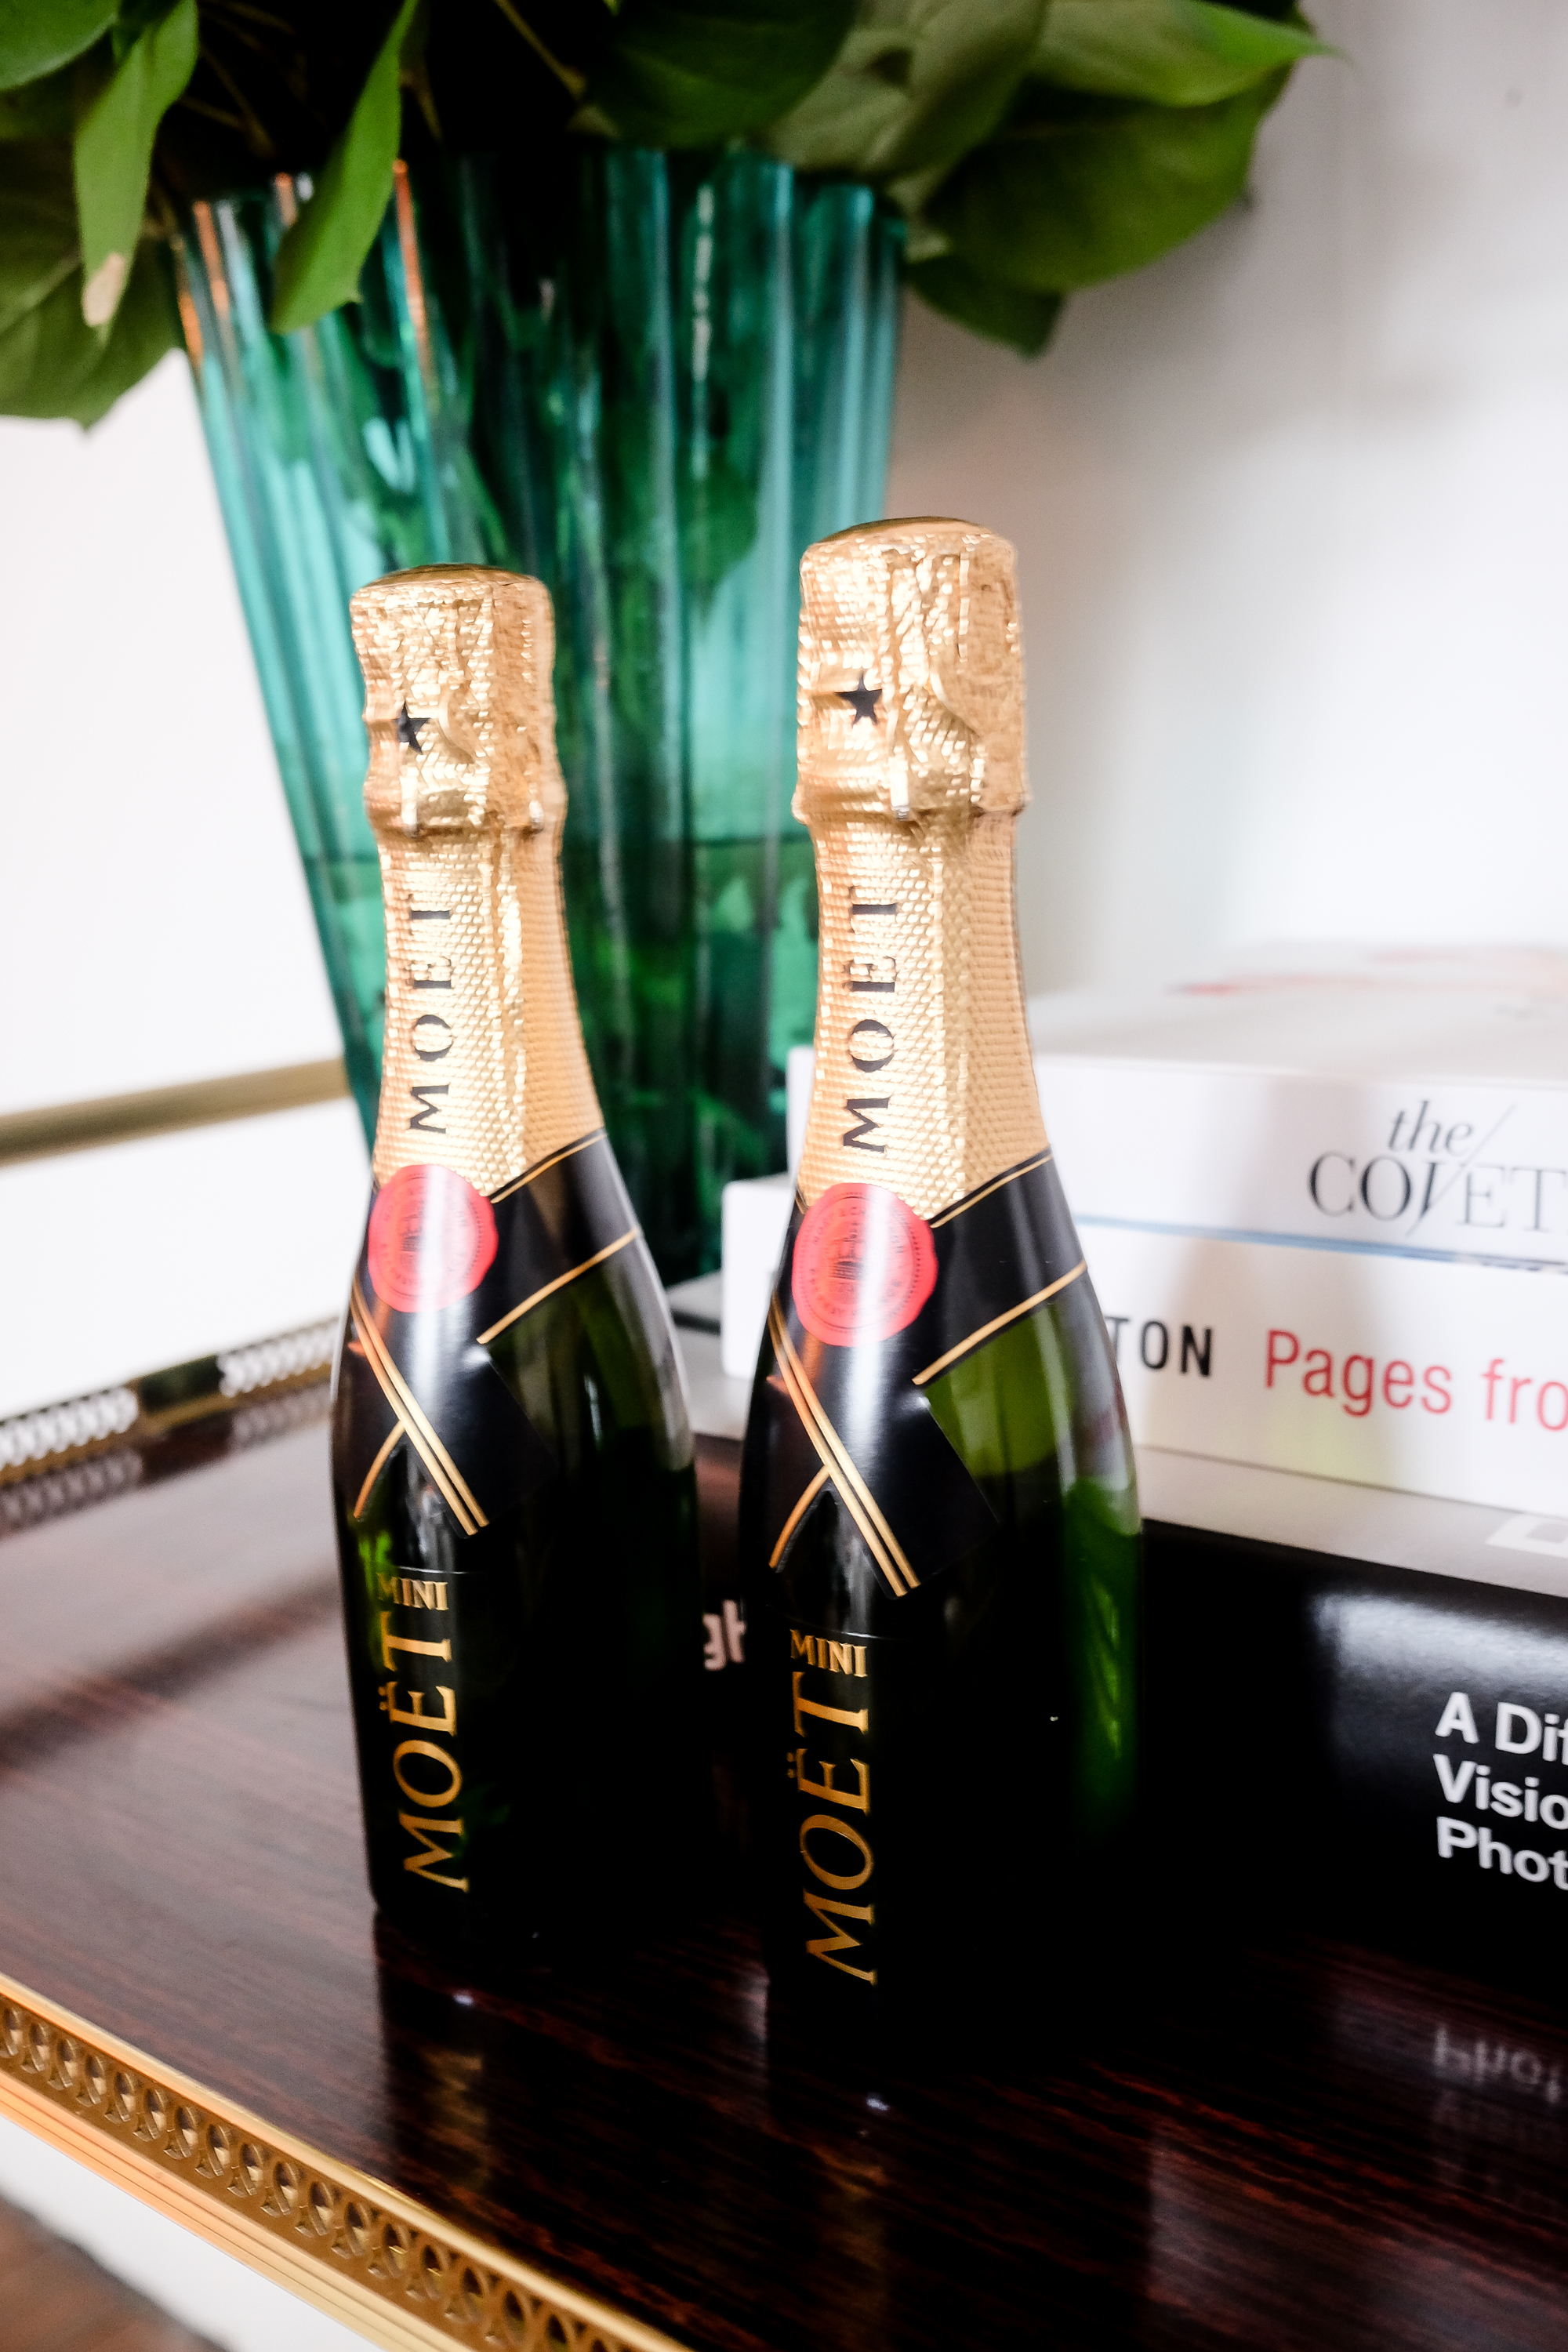 Moet & Chandon for Valentine'd Day